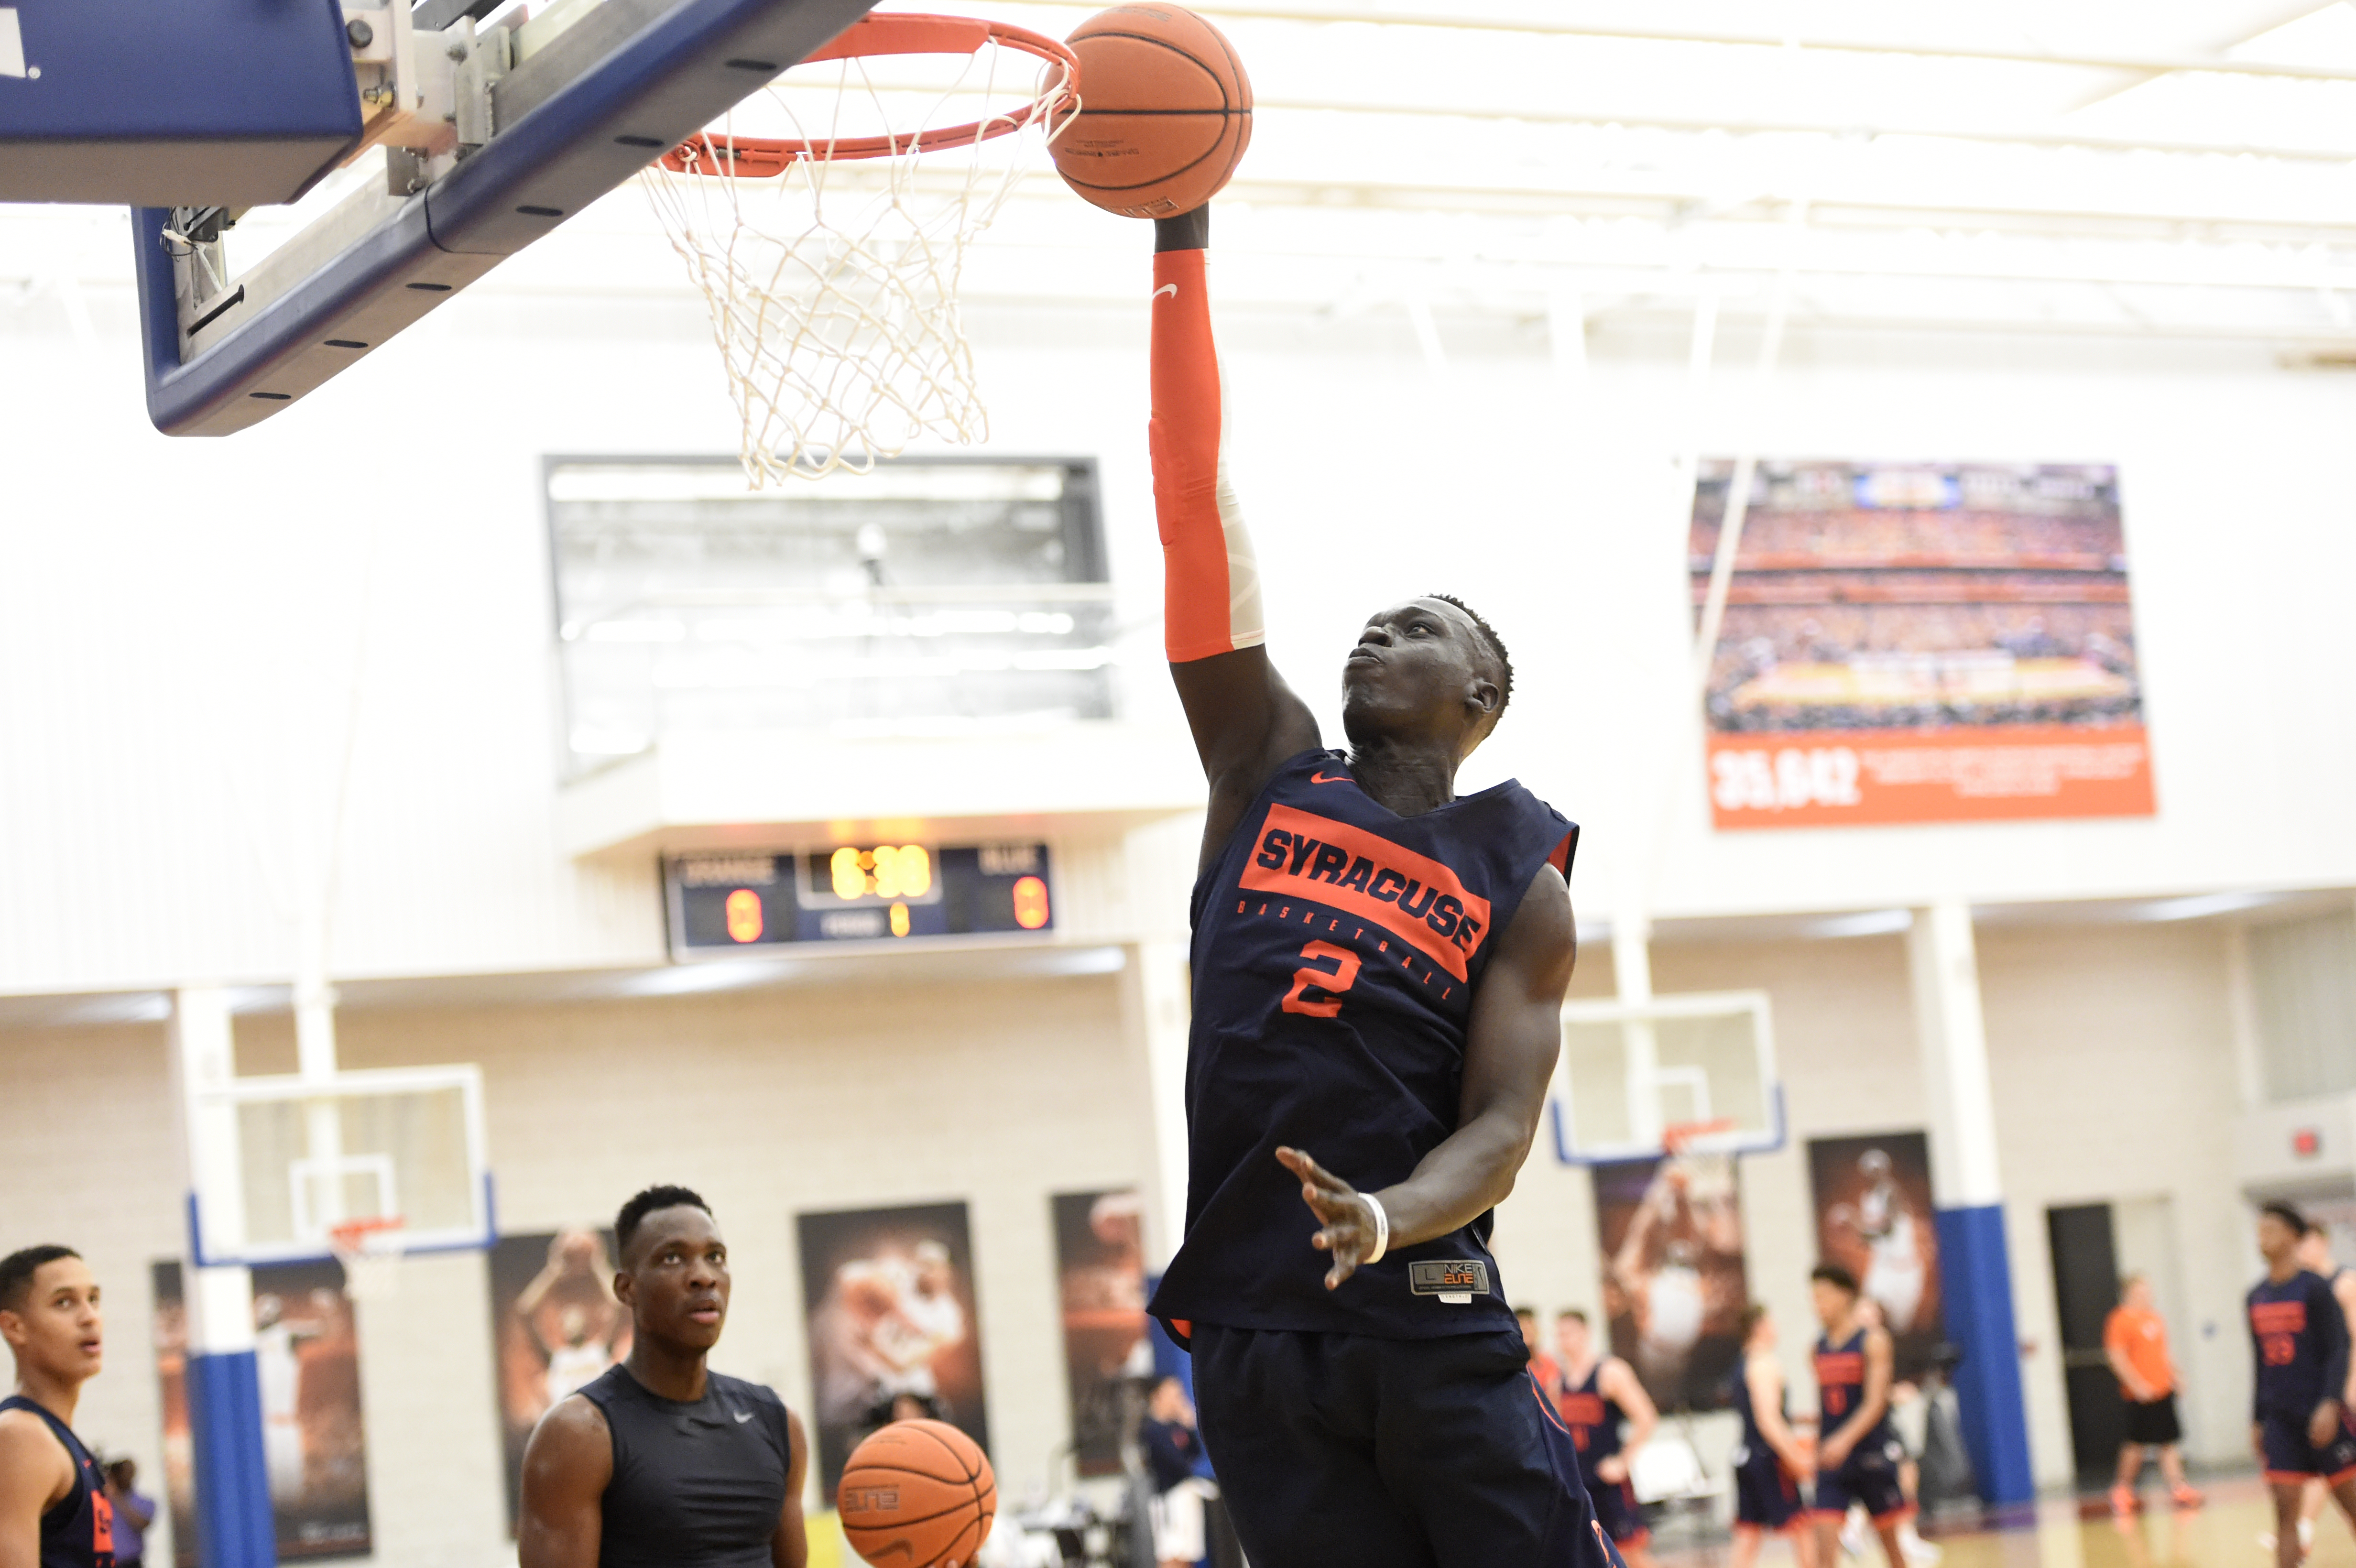 Bulking up: Several Syracuse basketball players have gained size and strength since the summer